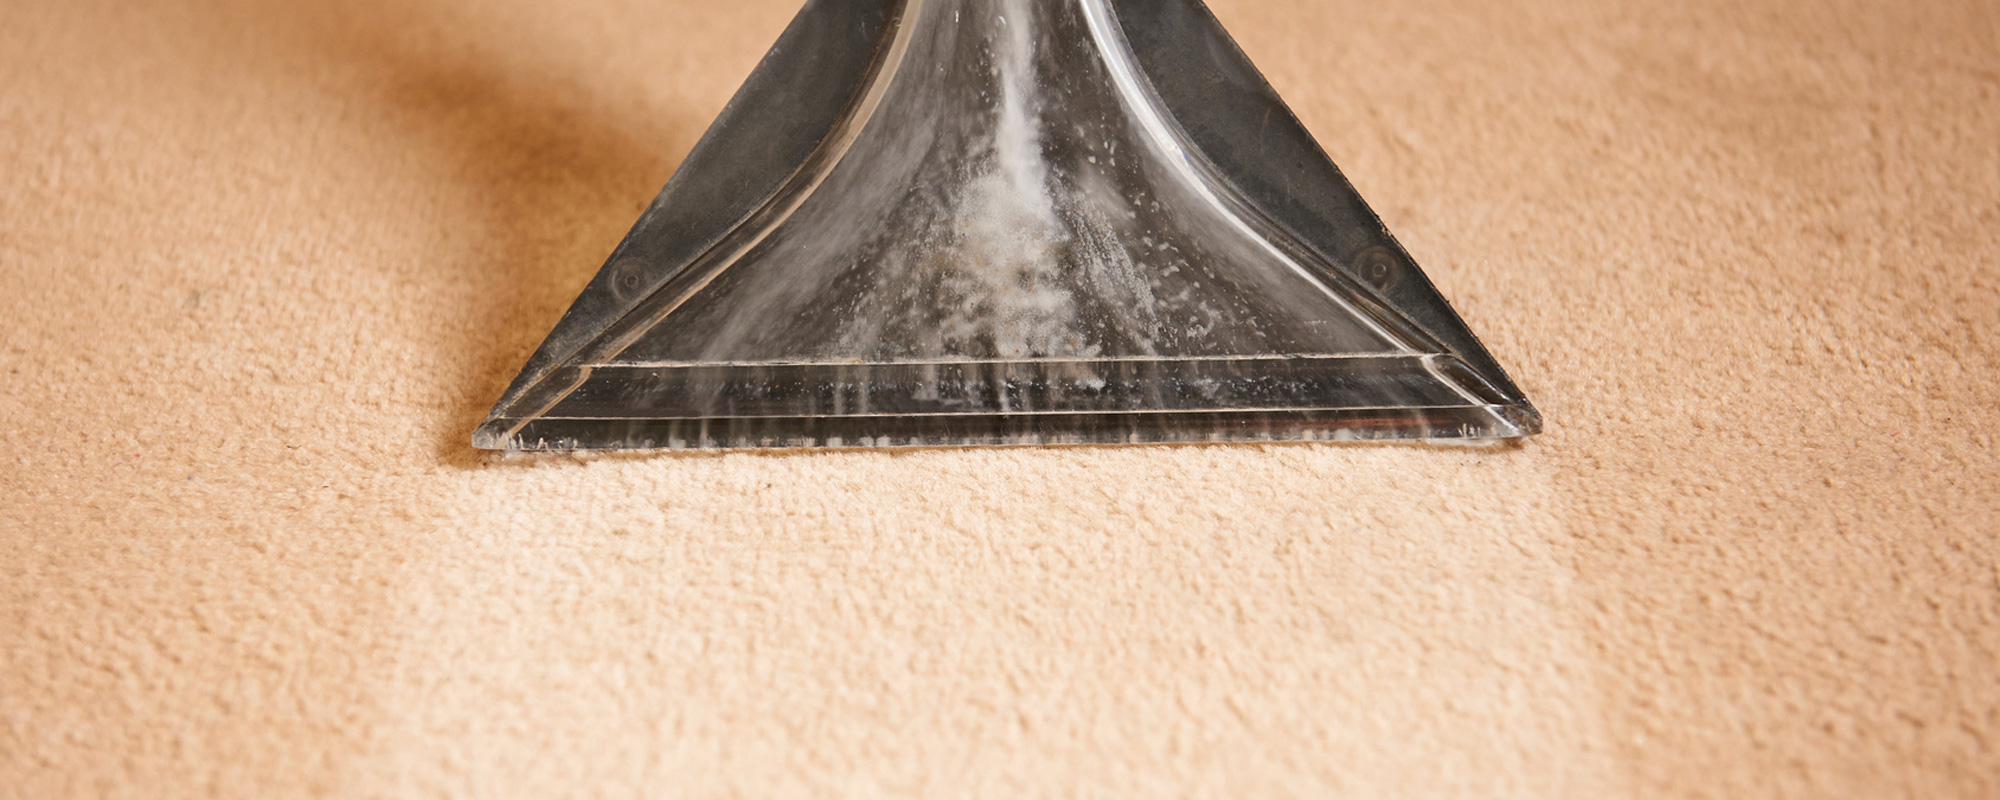 Cleaning a Carpet